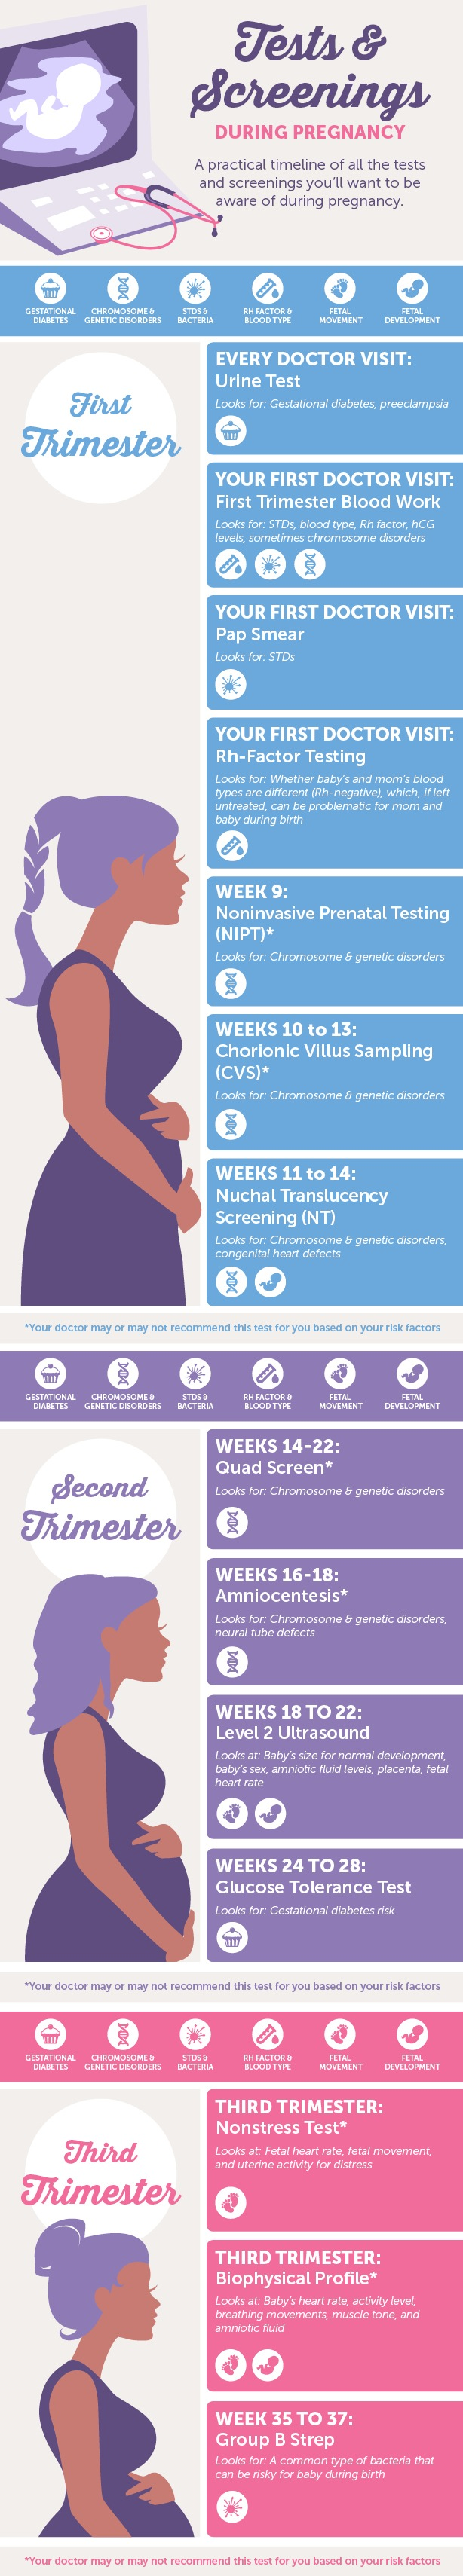 Baby Boy Strollers And Car Seats Infographic Pregnancy Tests Screenings What To Expect